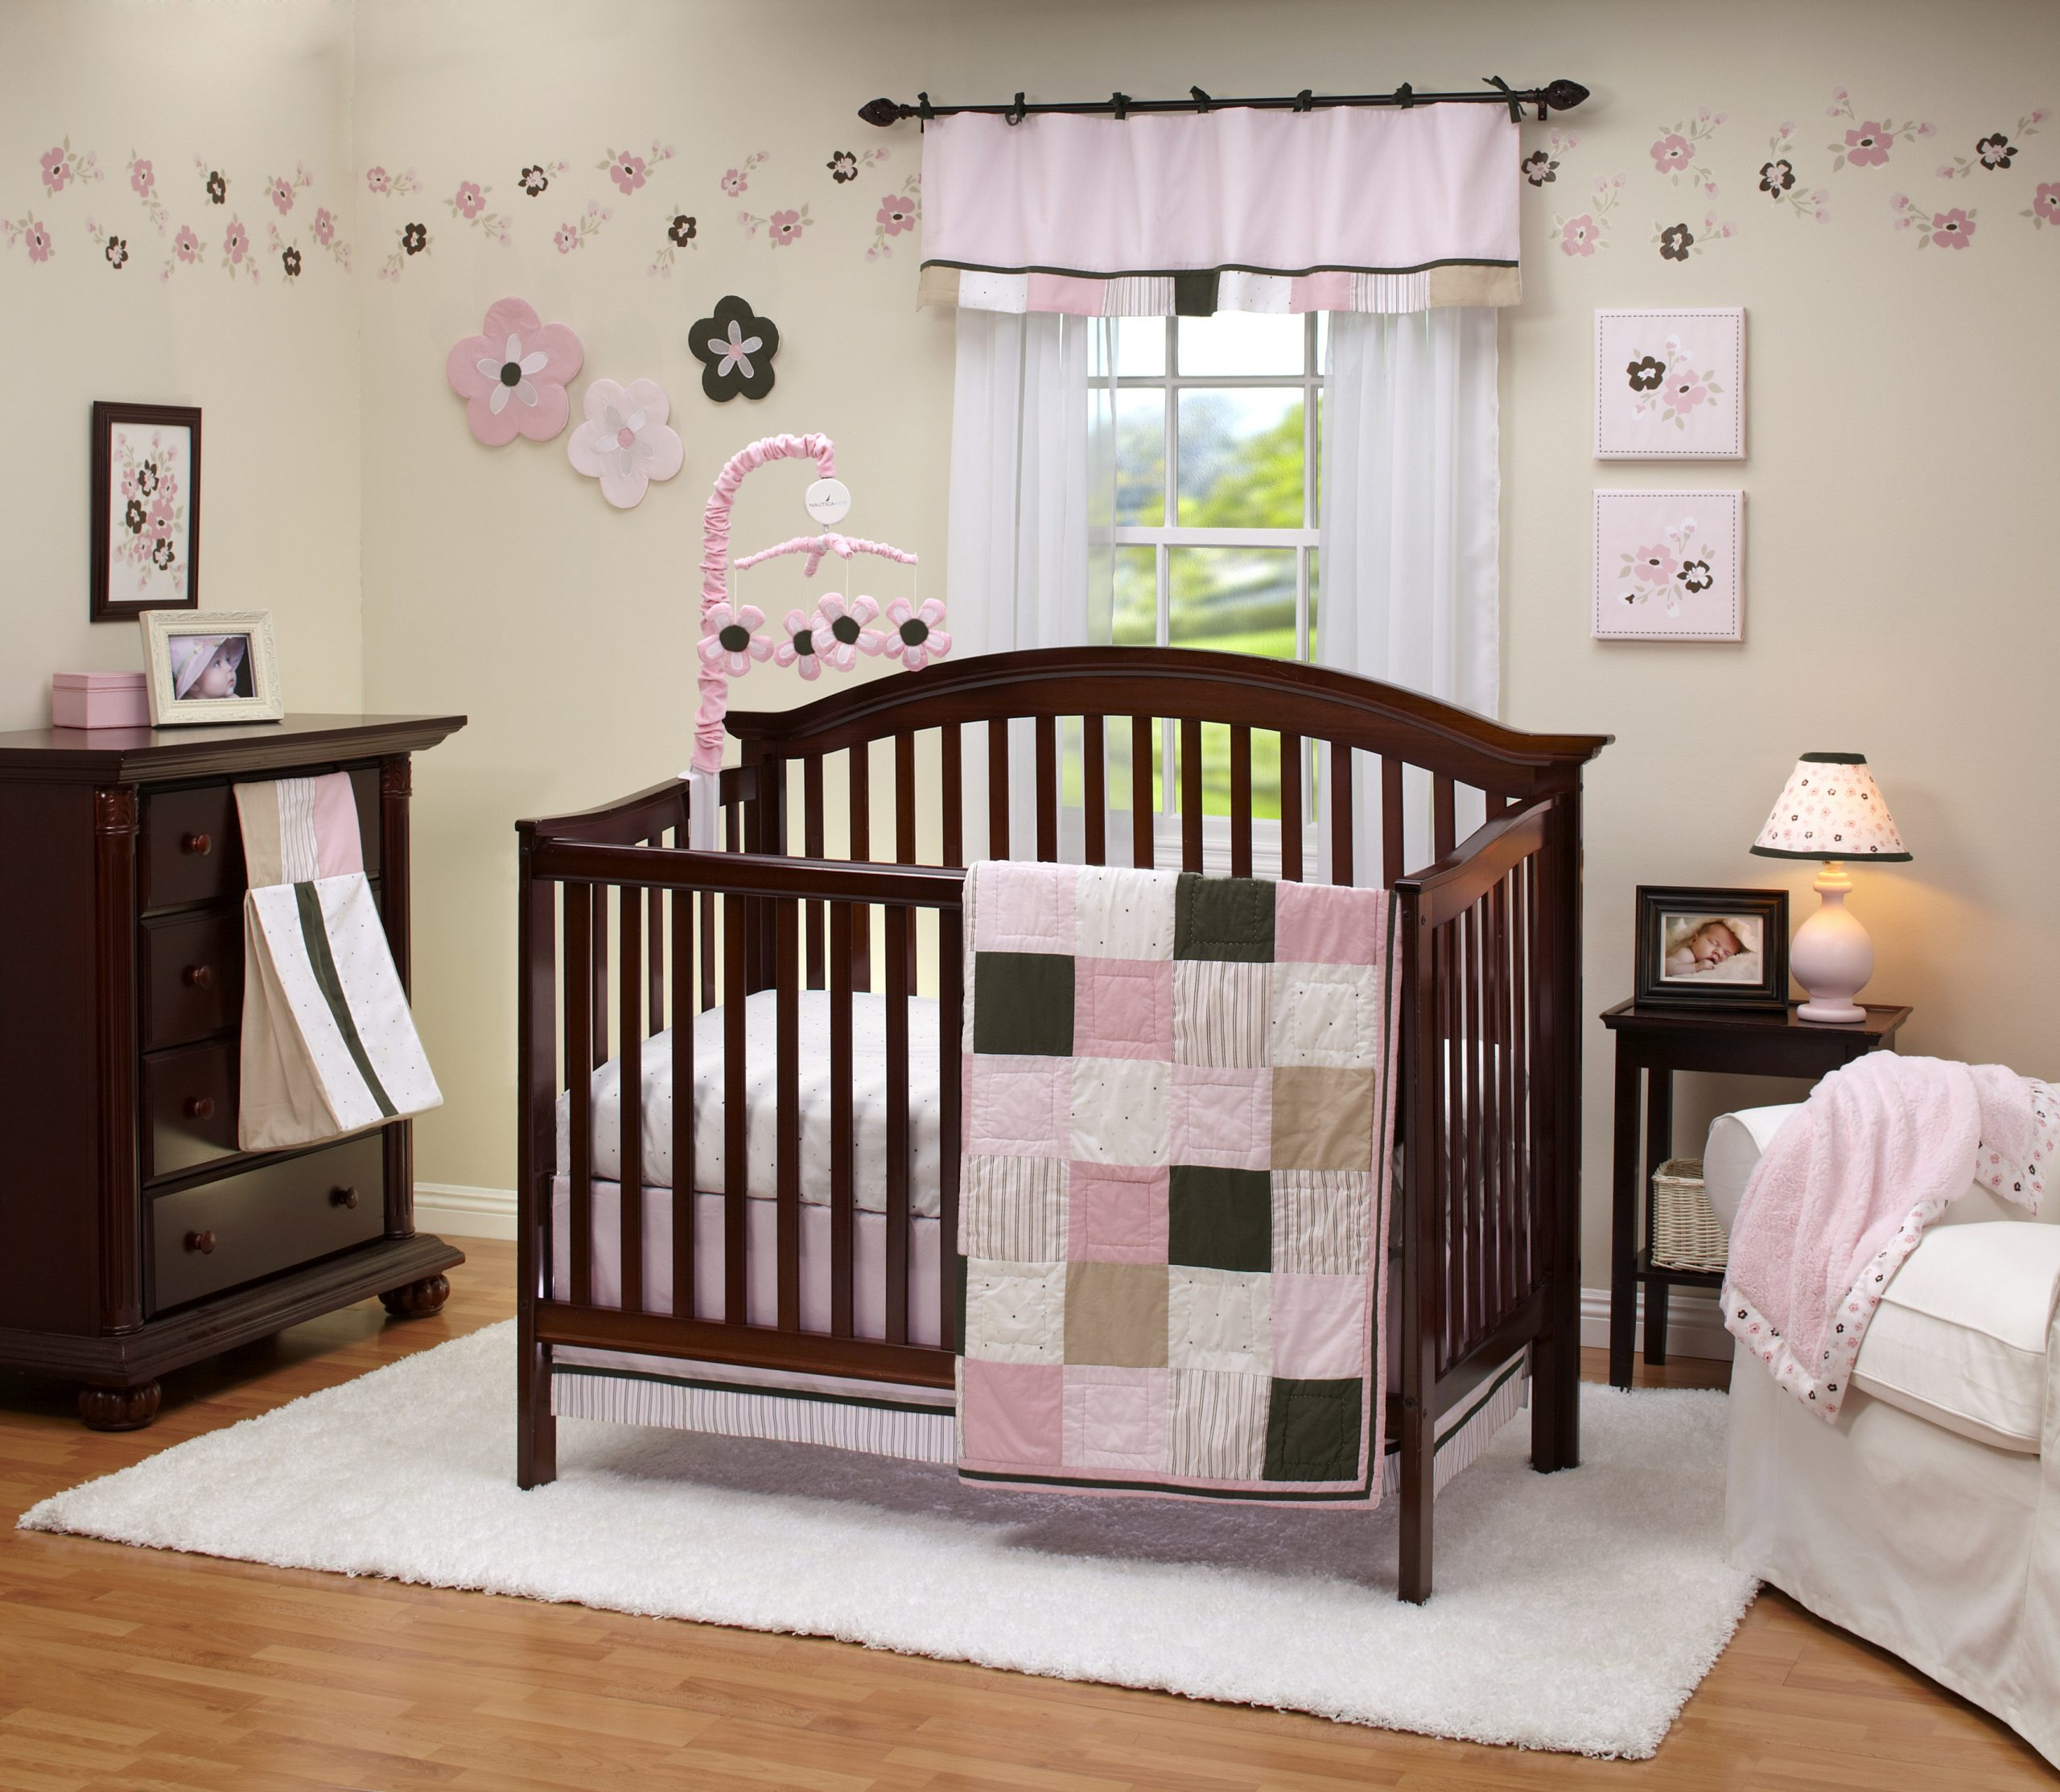 3 Tips For Picking The Right Baby Bedding For Your Newborn